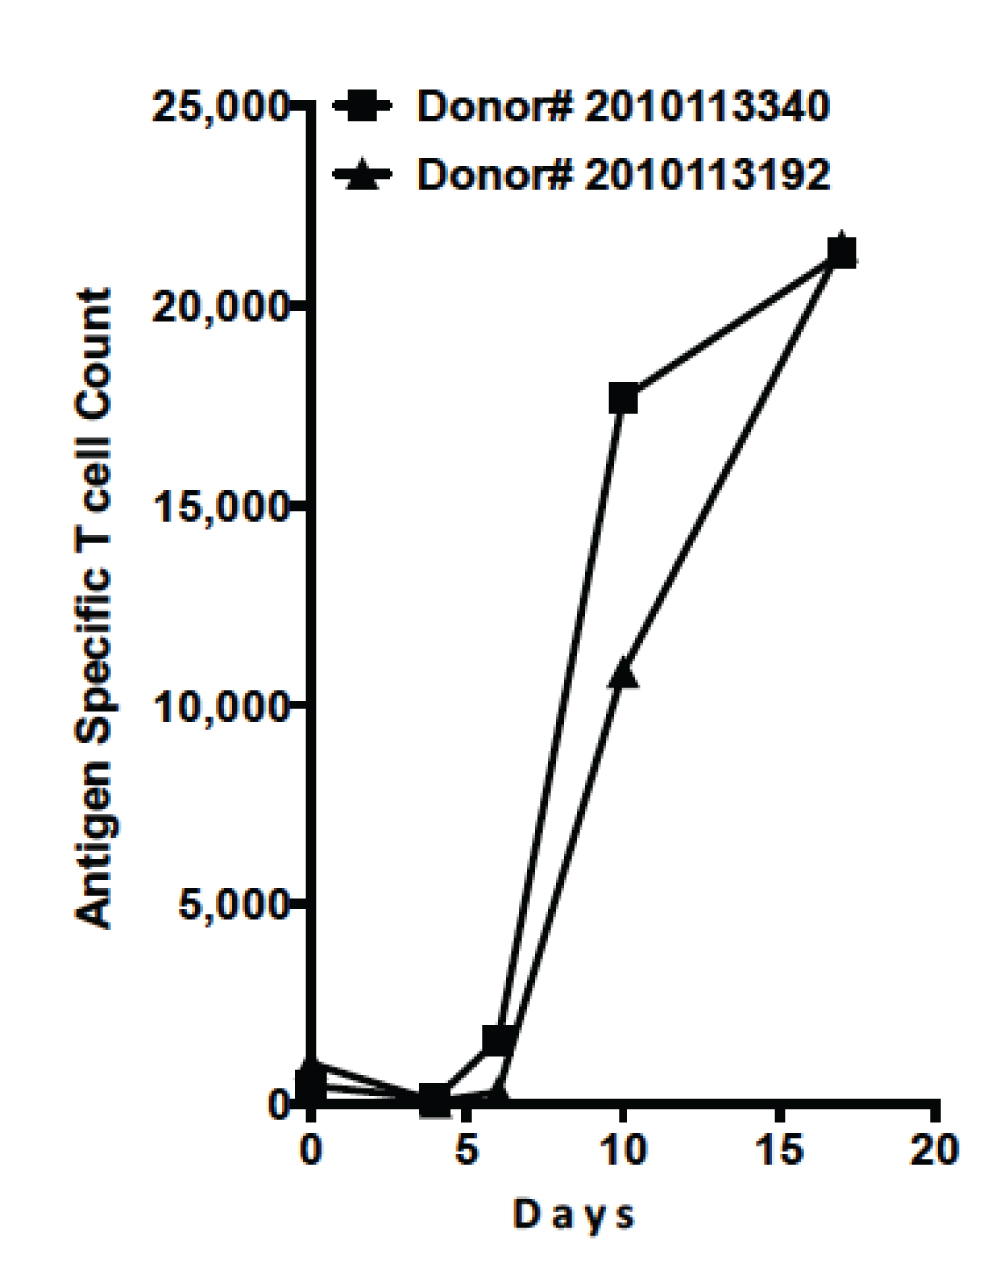 [MISSING IMAGE: T1702624_LINE-DONOR.JPG]